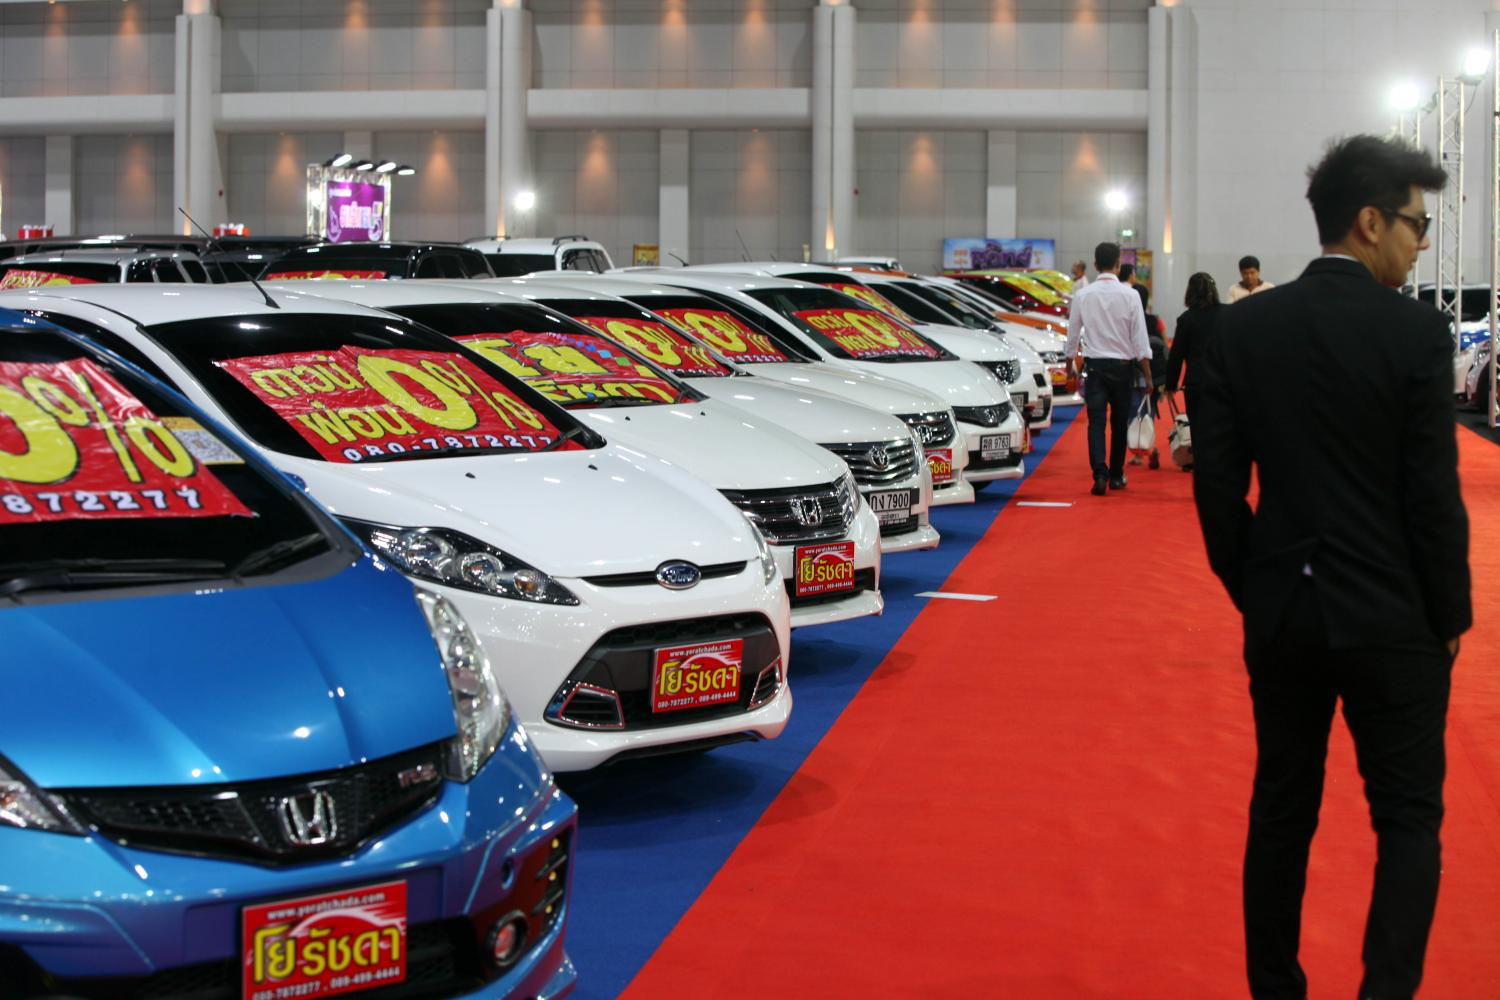 Used car market likely to enjoy continued growth